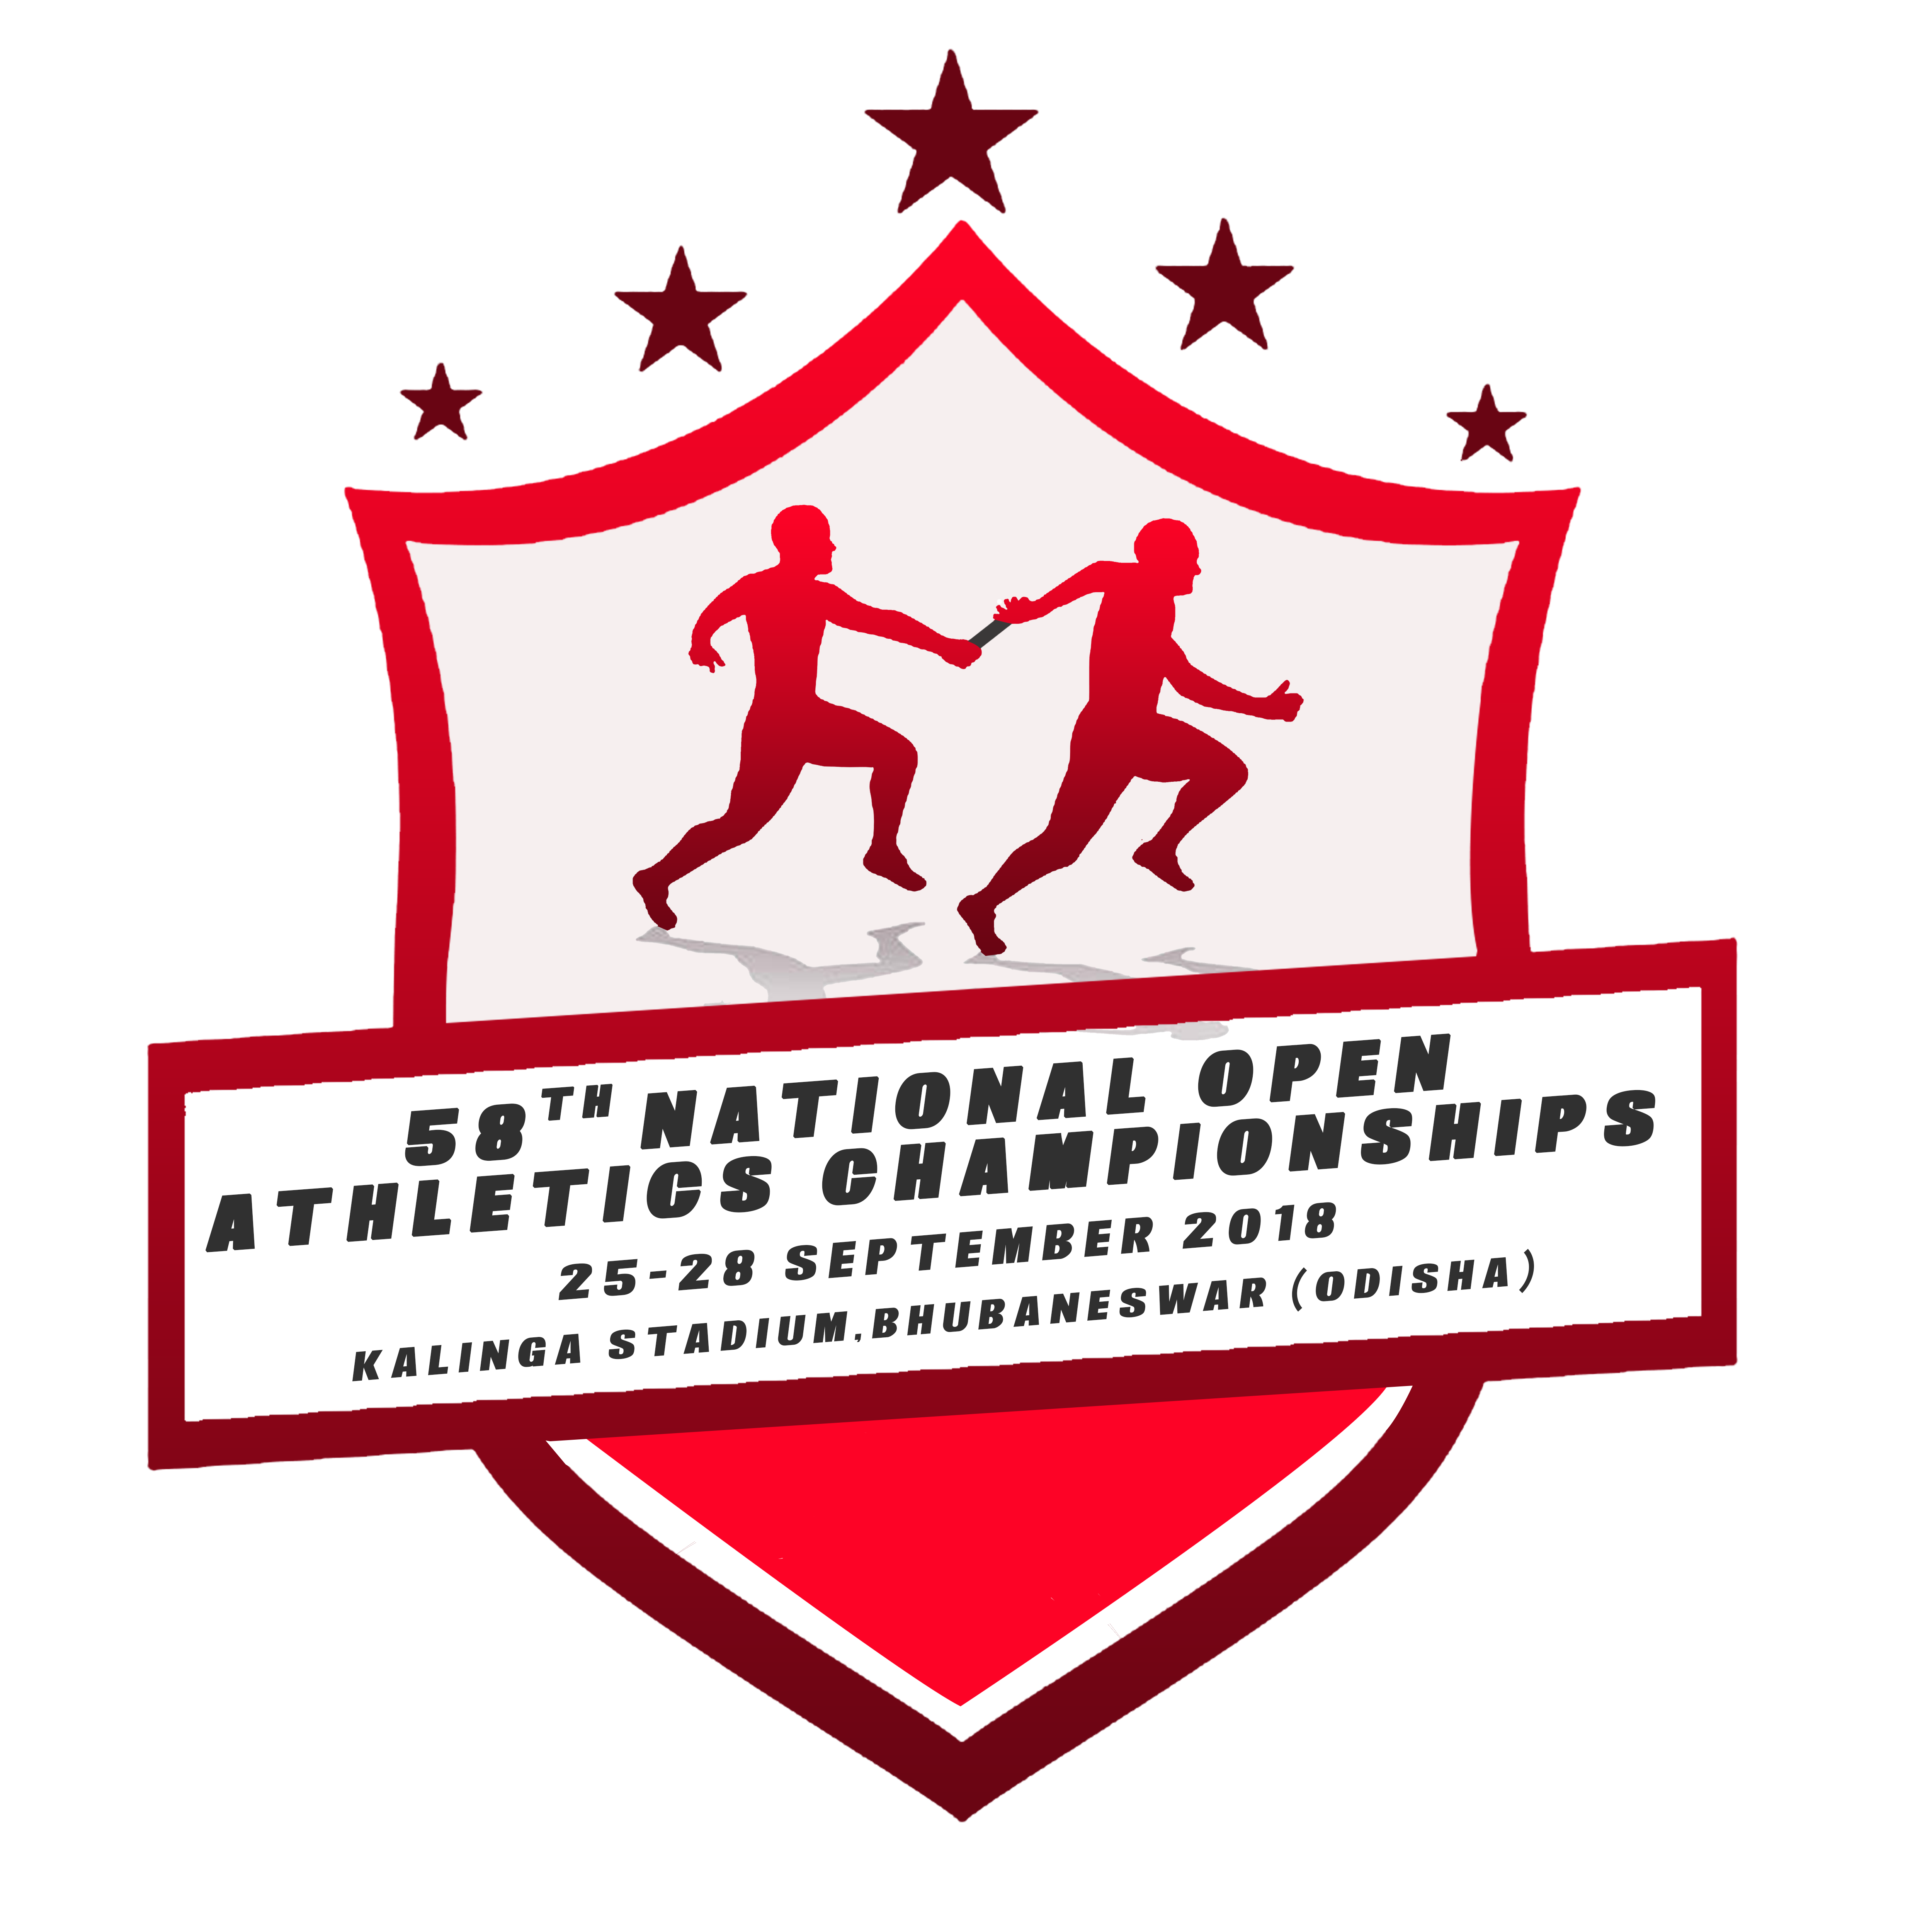 58th National Open championships